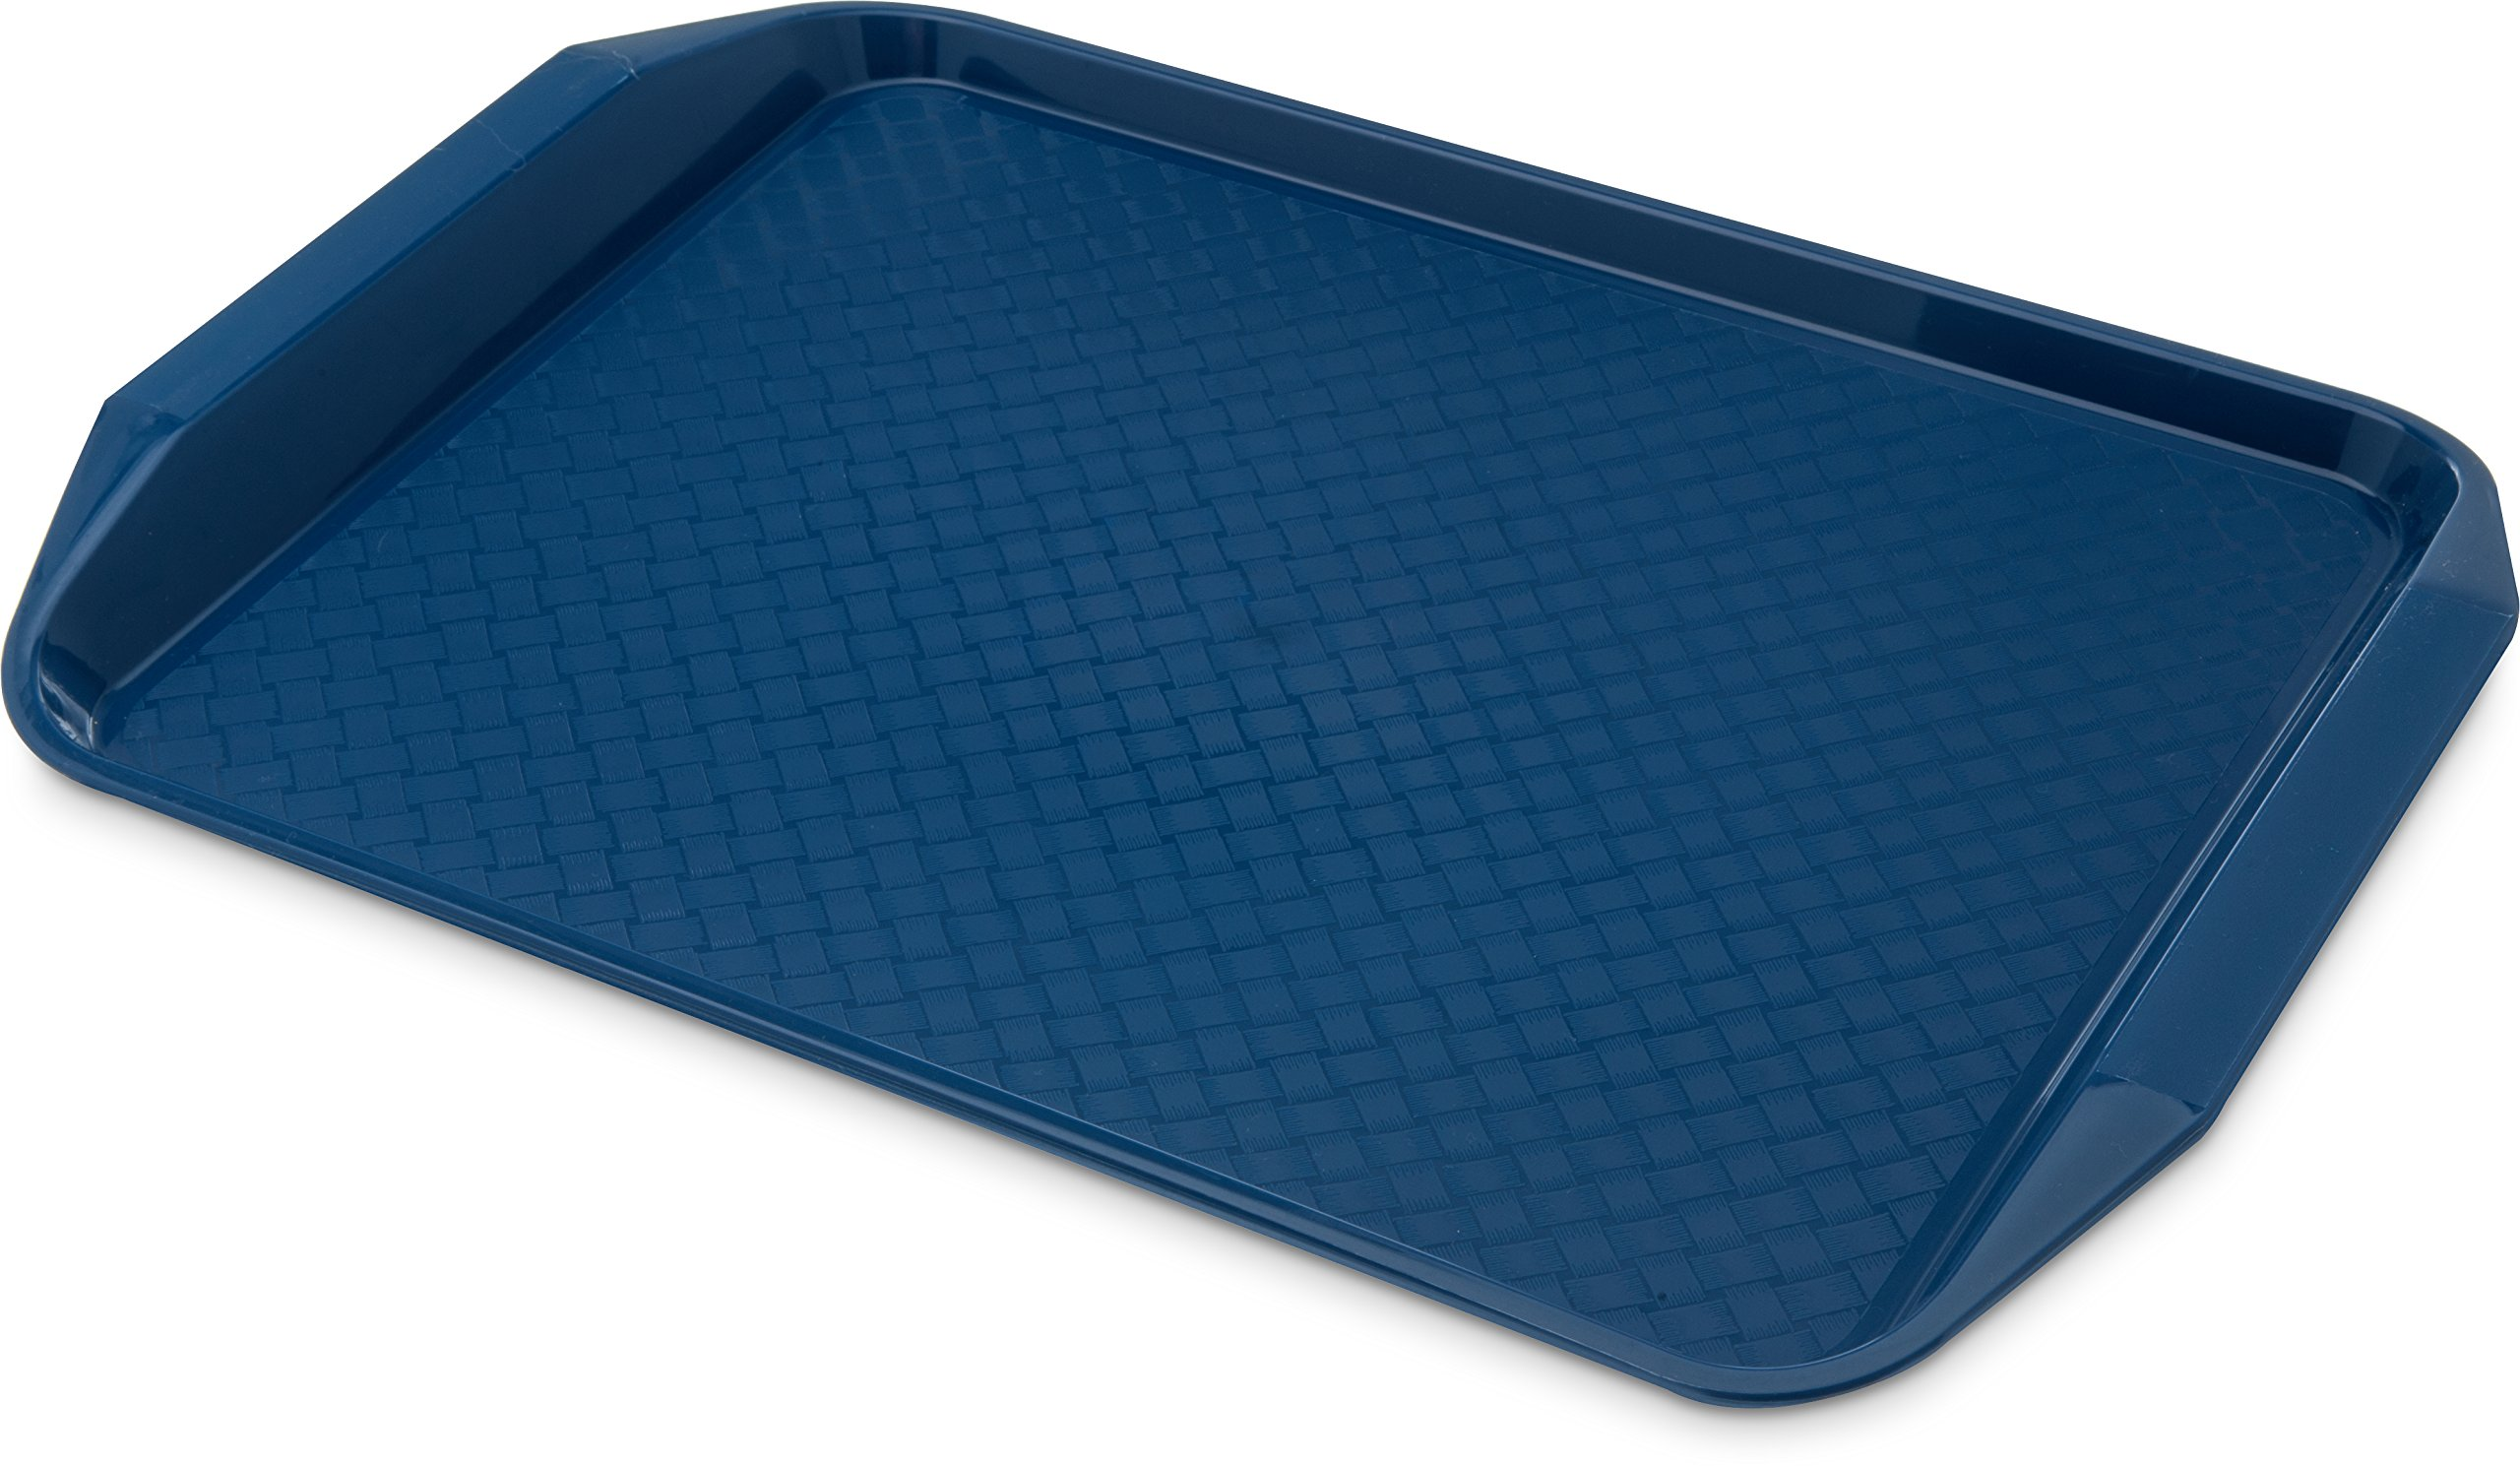 Carlisle CT121714 Cafe Handled Plastic Cafeteria/Fast Food Tray, NSF Certified, BPA Free, 17'' Length x 12'' Width, Blue (Pack of 24) by Carlisle (Image #1)